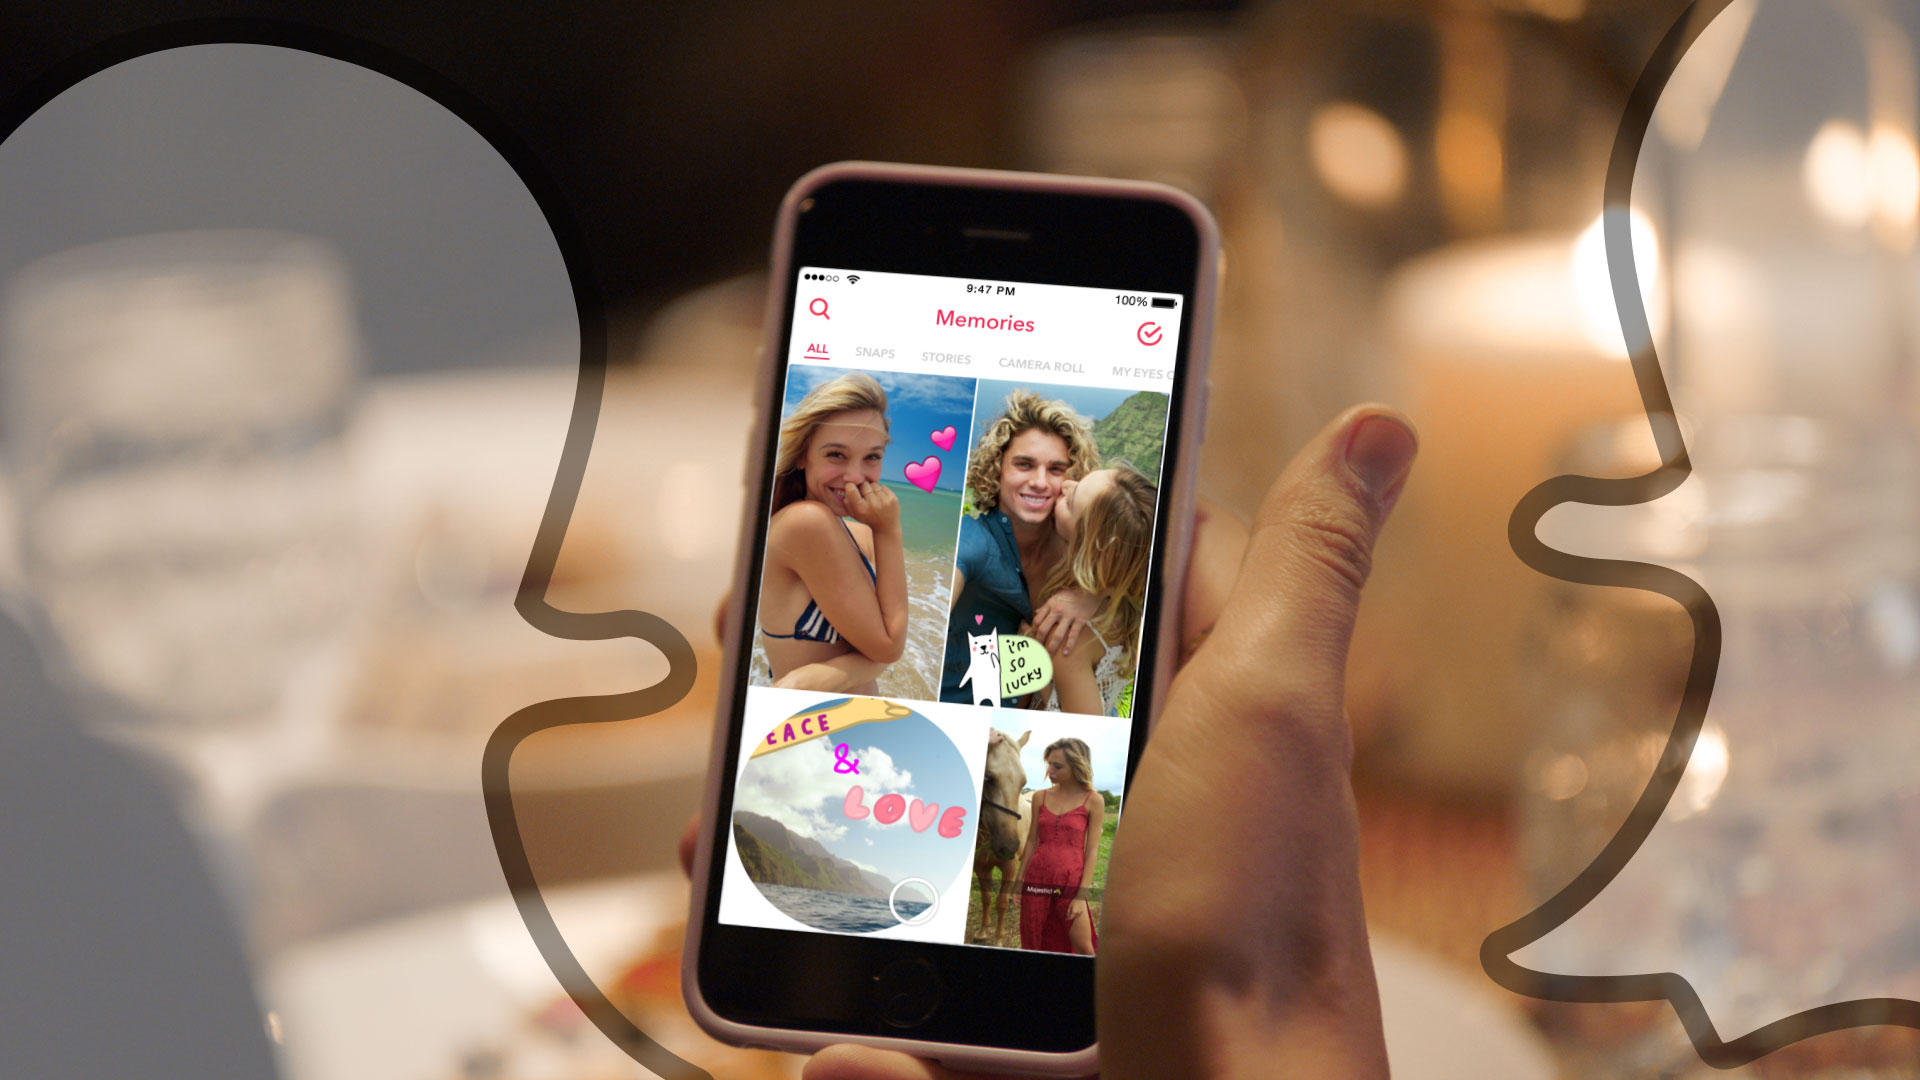 Snapchat Memories is a searchable replacement for your